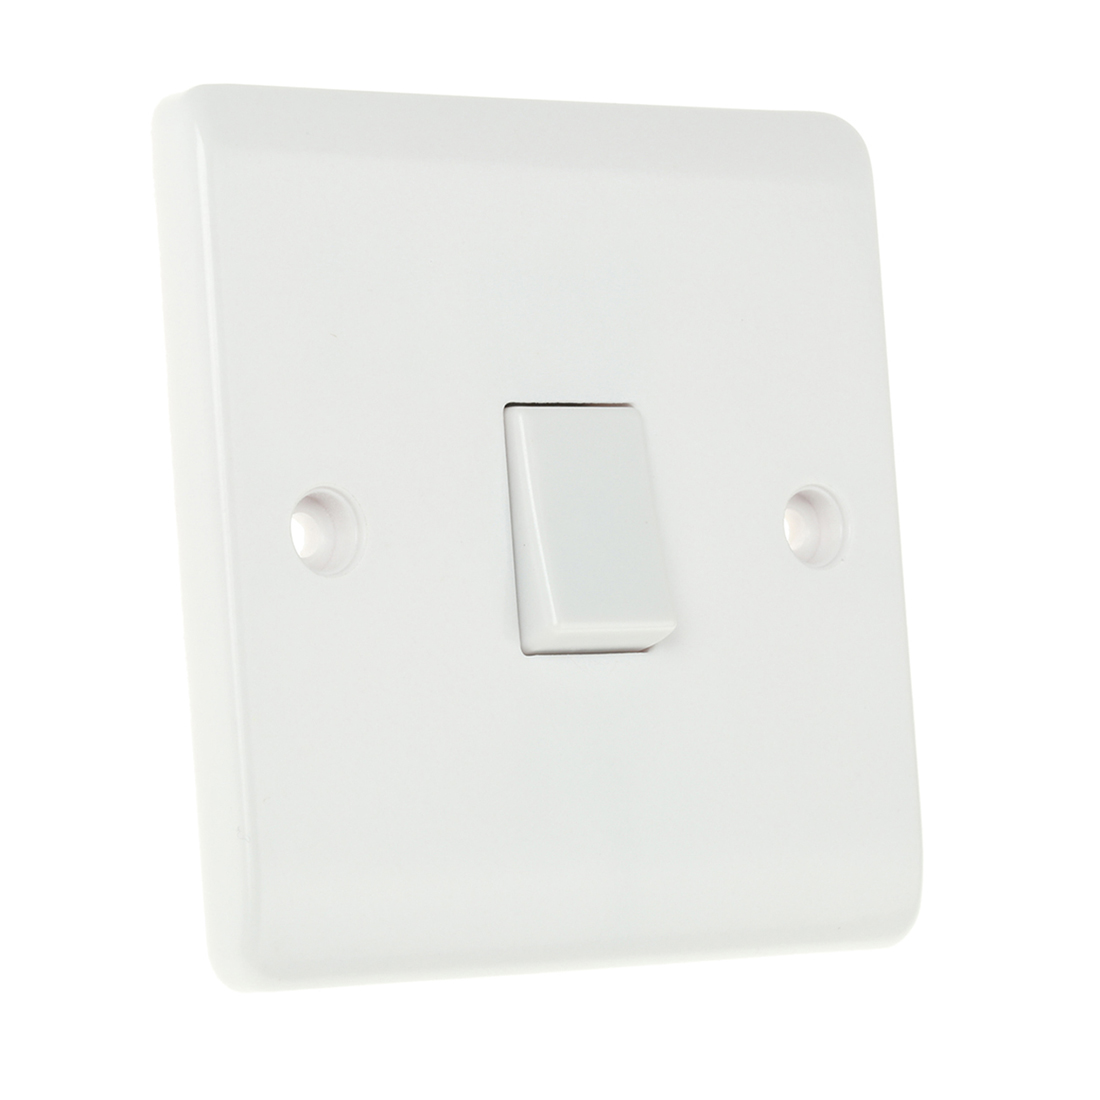 White 10 A Wall Mount Rocker Light Switch White 7 mm, 2 Way Screwed Matte, 1 Gang BS Standard, 250 V 86mm